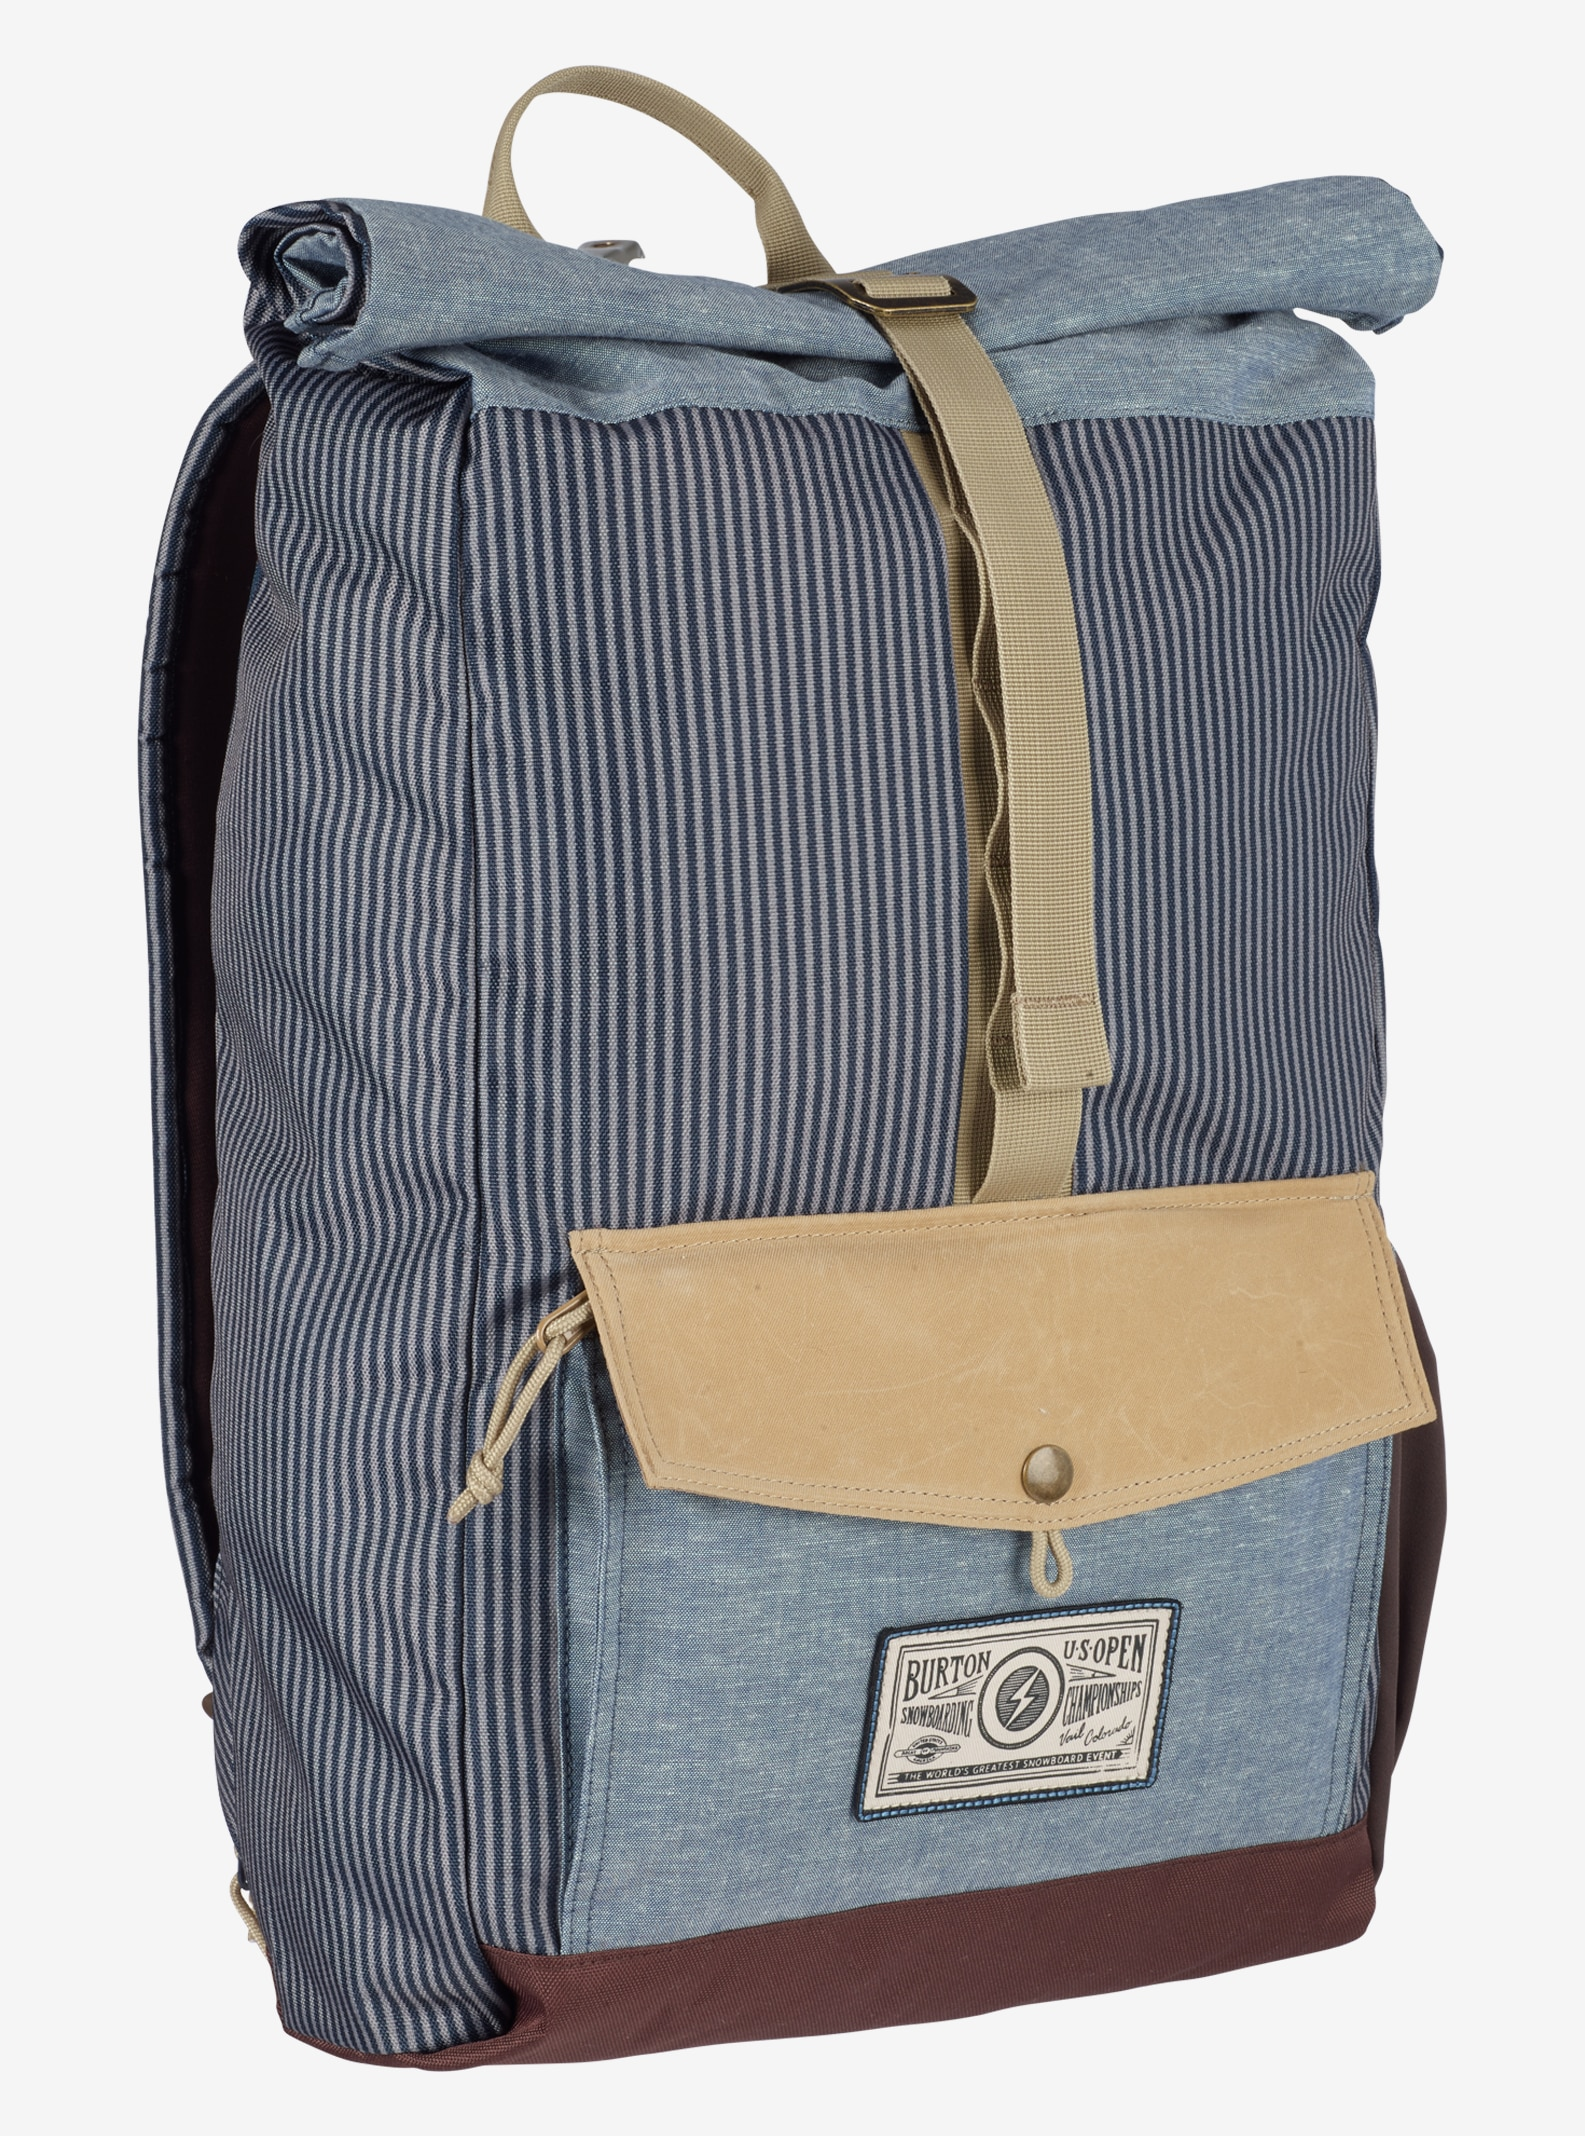 Burton US Open Export Backpack shown in USO Blue